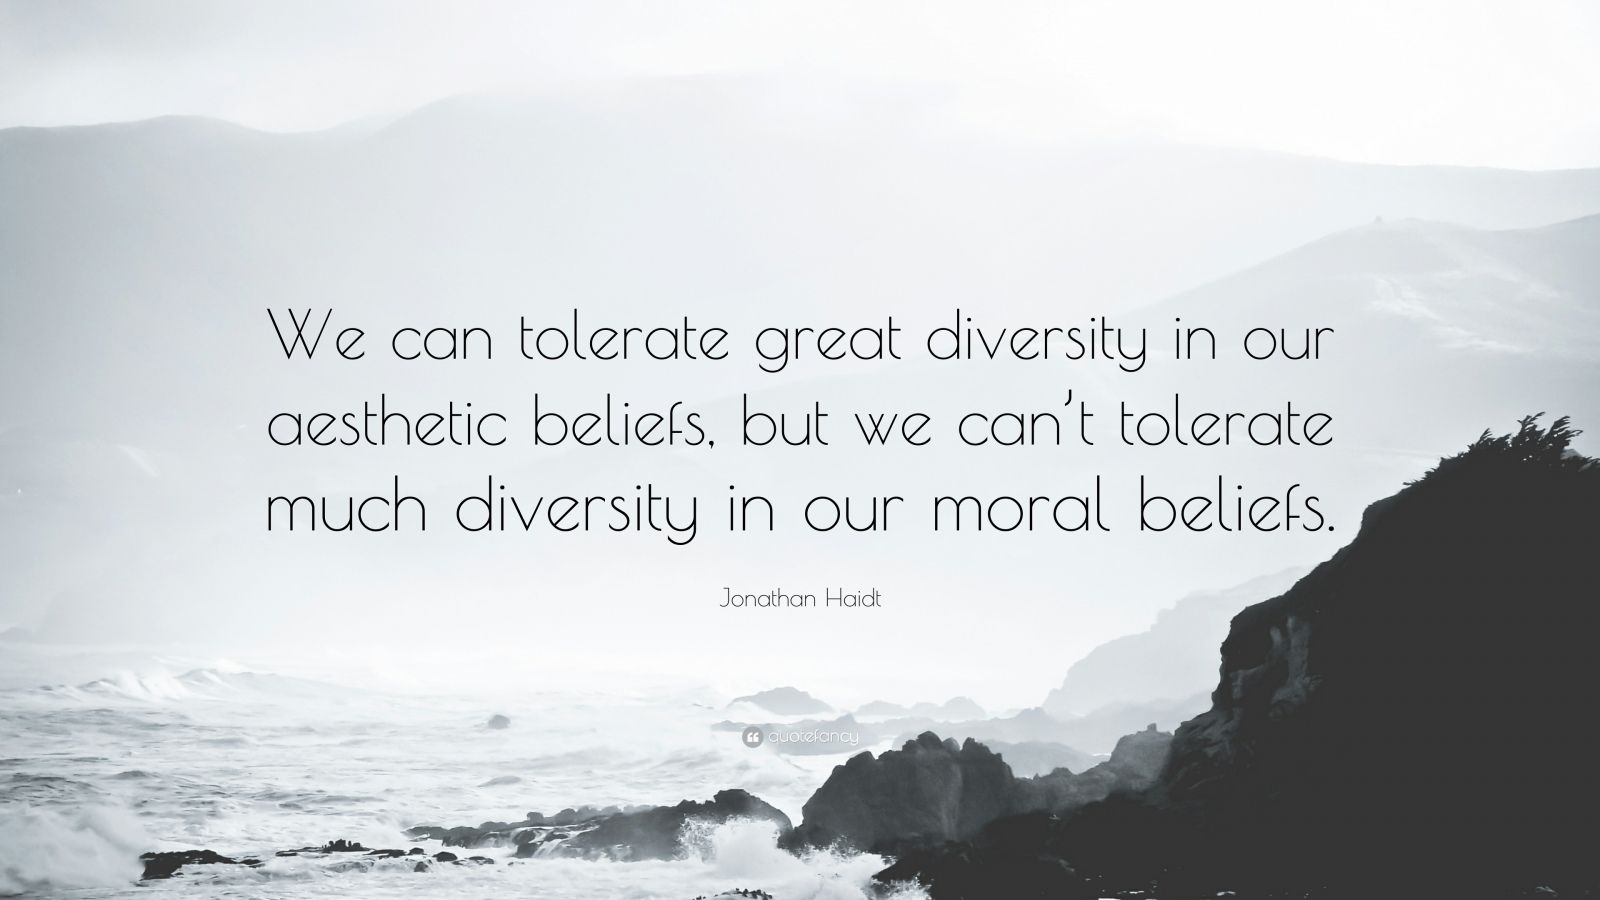 our beliefs and standards are our morals Ethics requires that there be consistency among our moral standards and in how we apply these standards ethics also requires a consistency between our ethical standards and our actions, as well as among our inner desires.